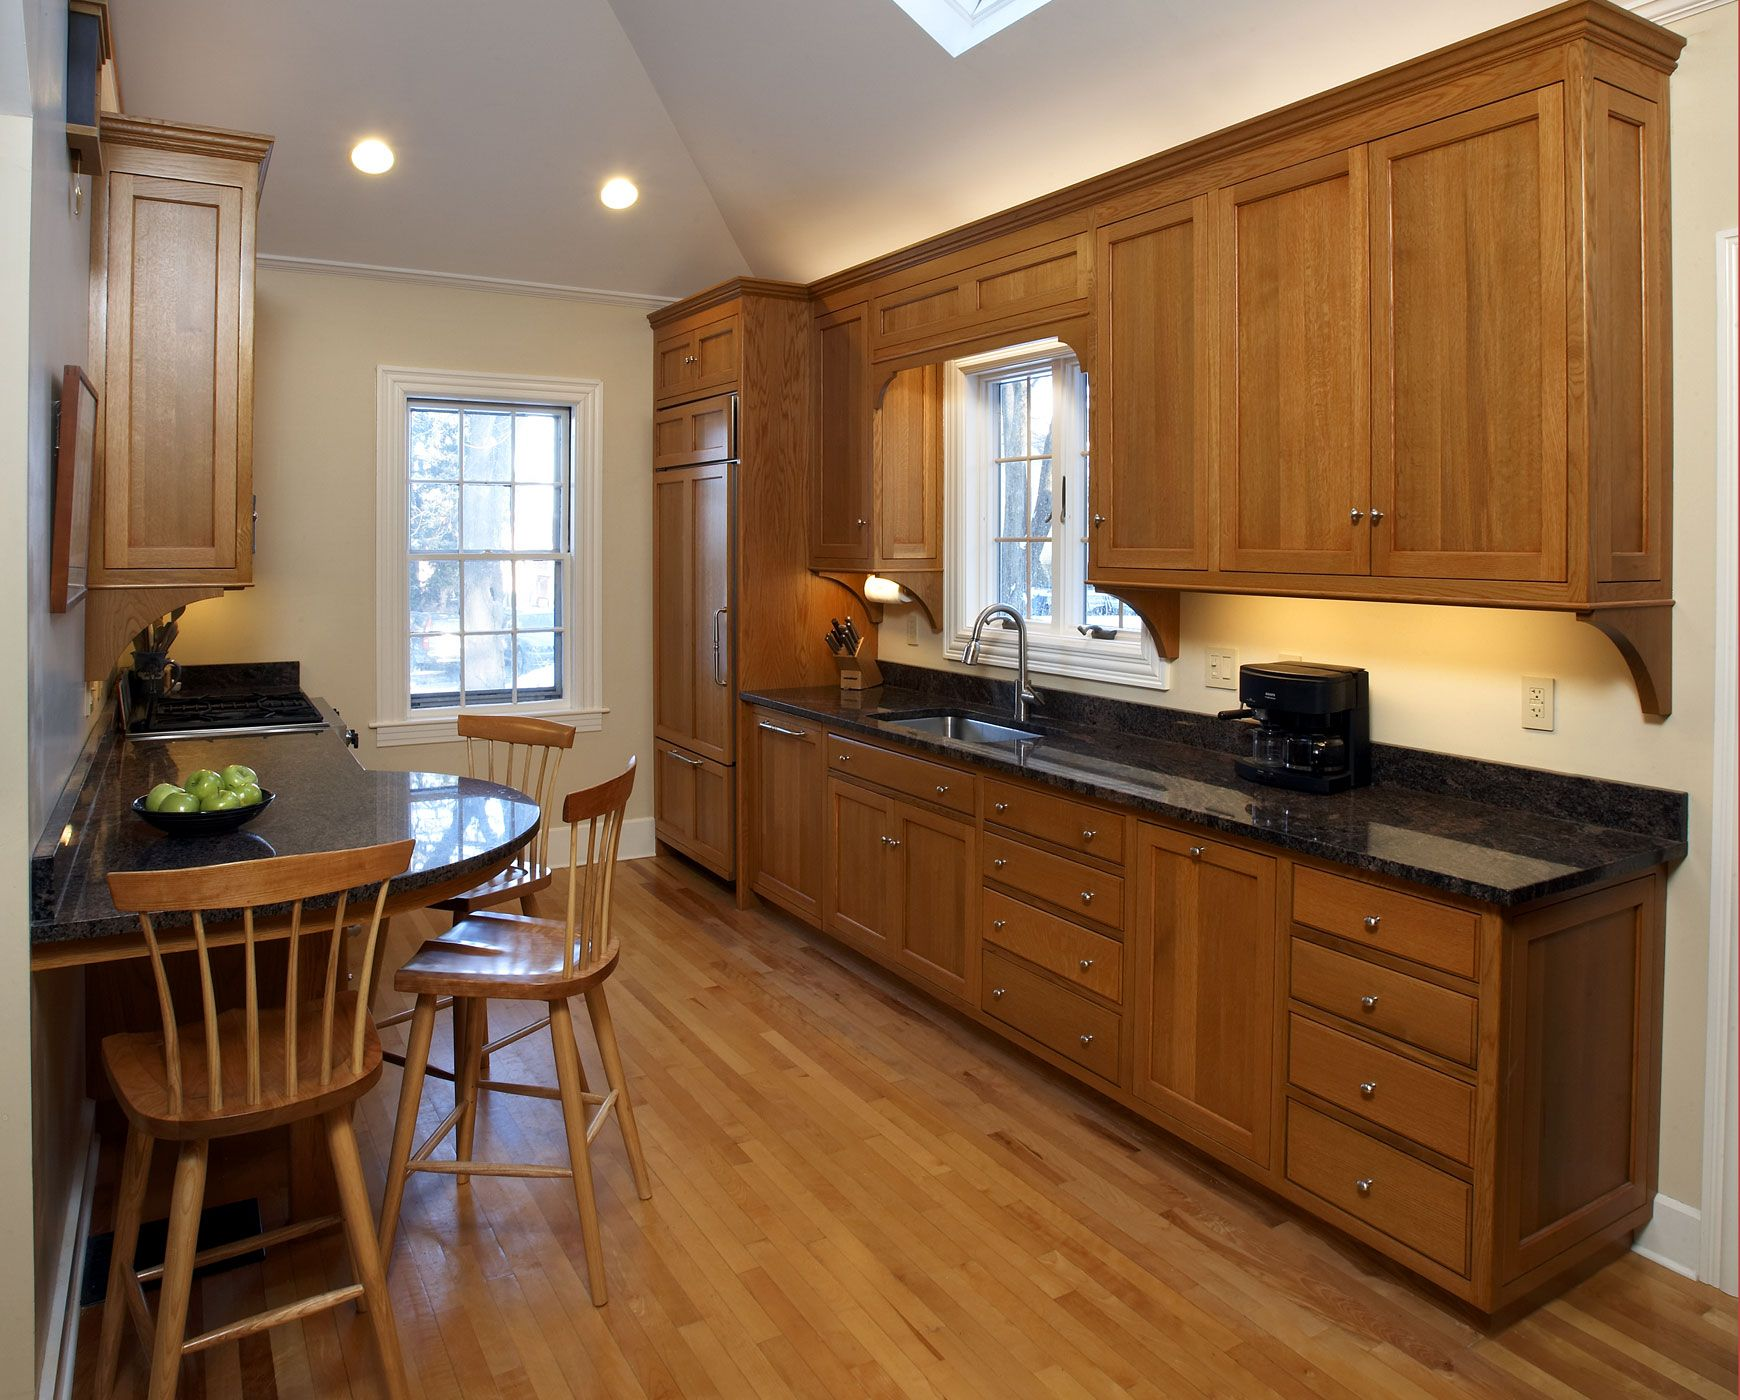 Red Kitchens With Oak Cabinets Kitchens With Oak Cabinets Dovetail Kitchen Oak 2